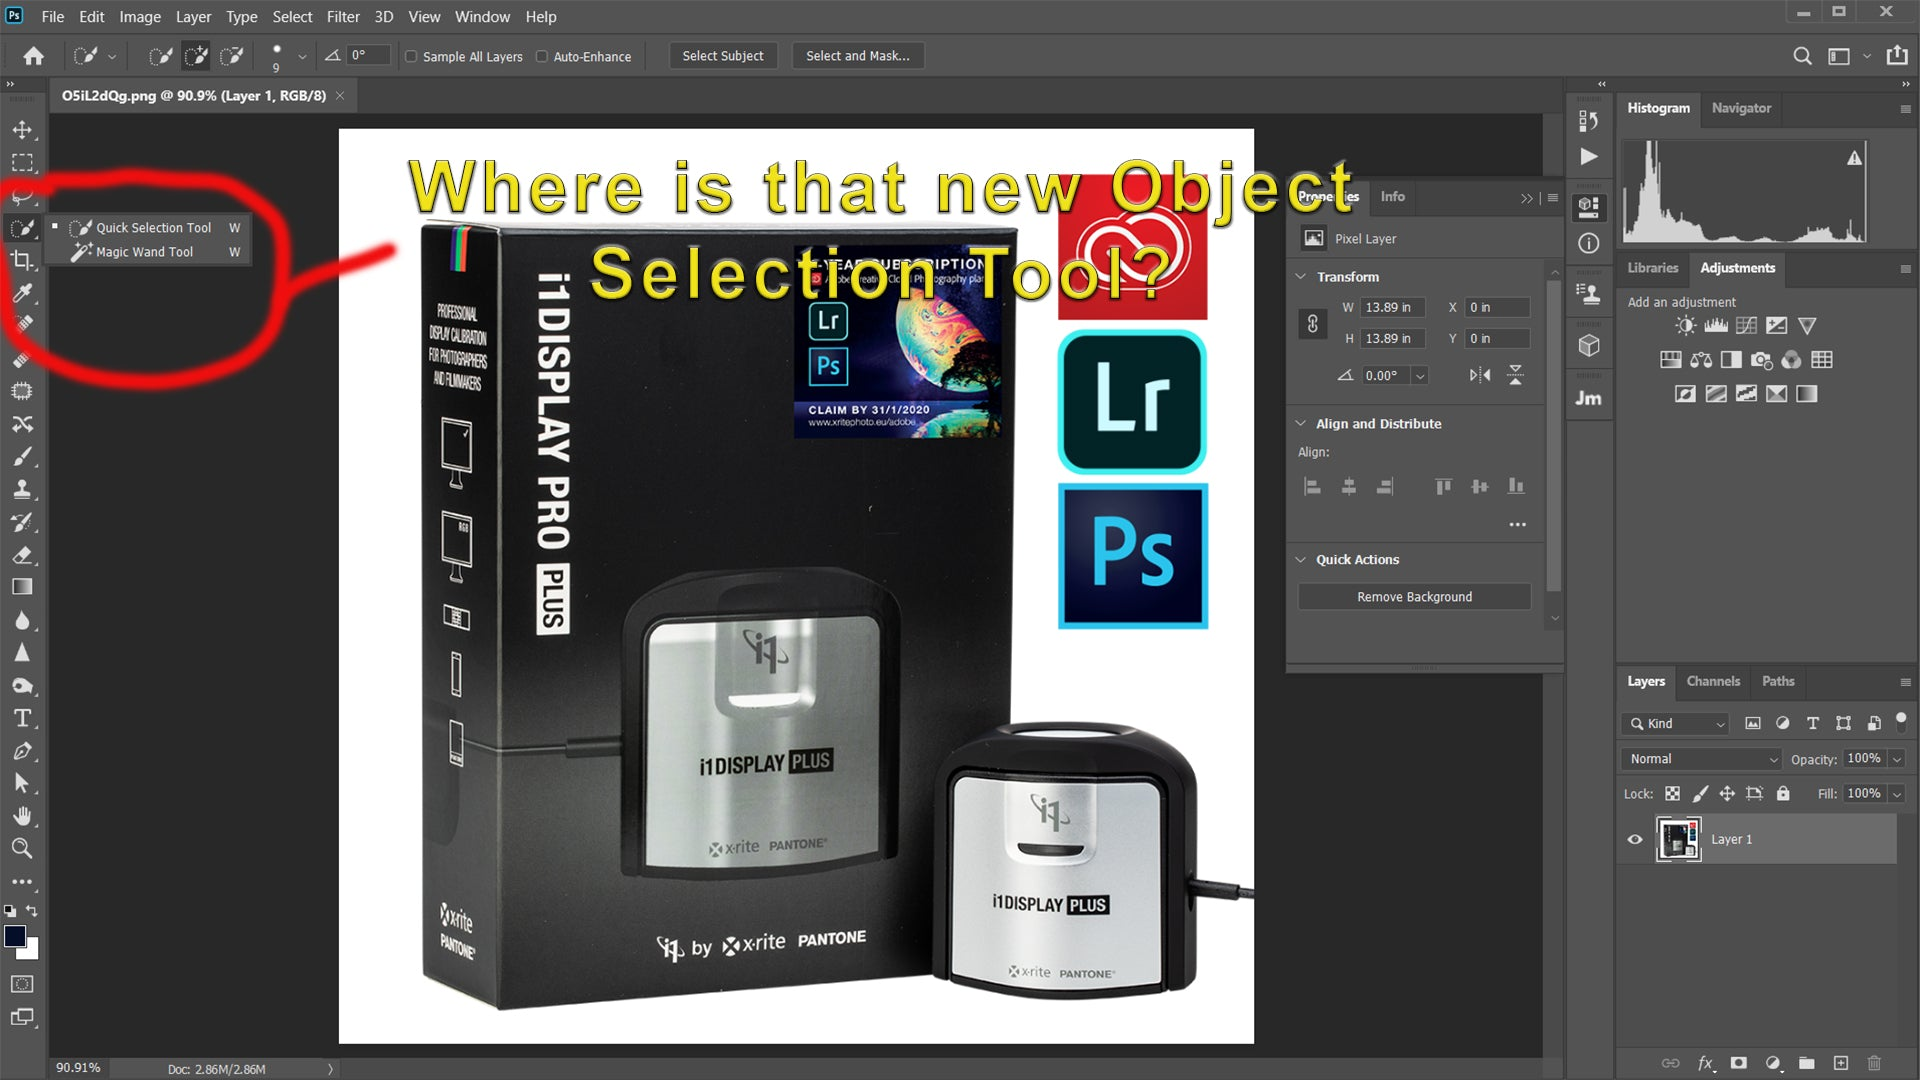 Adobe Photoshop 2020 and the Missing Tools on the Tool Bar